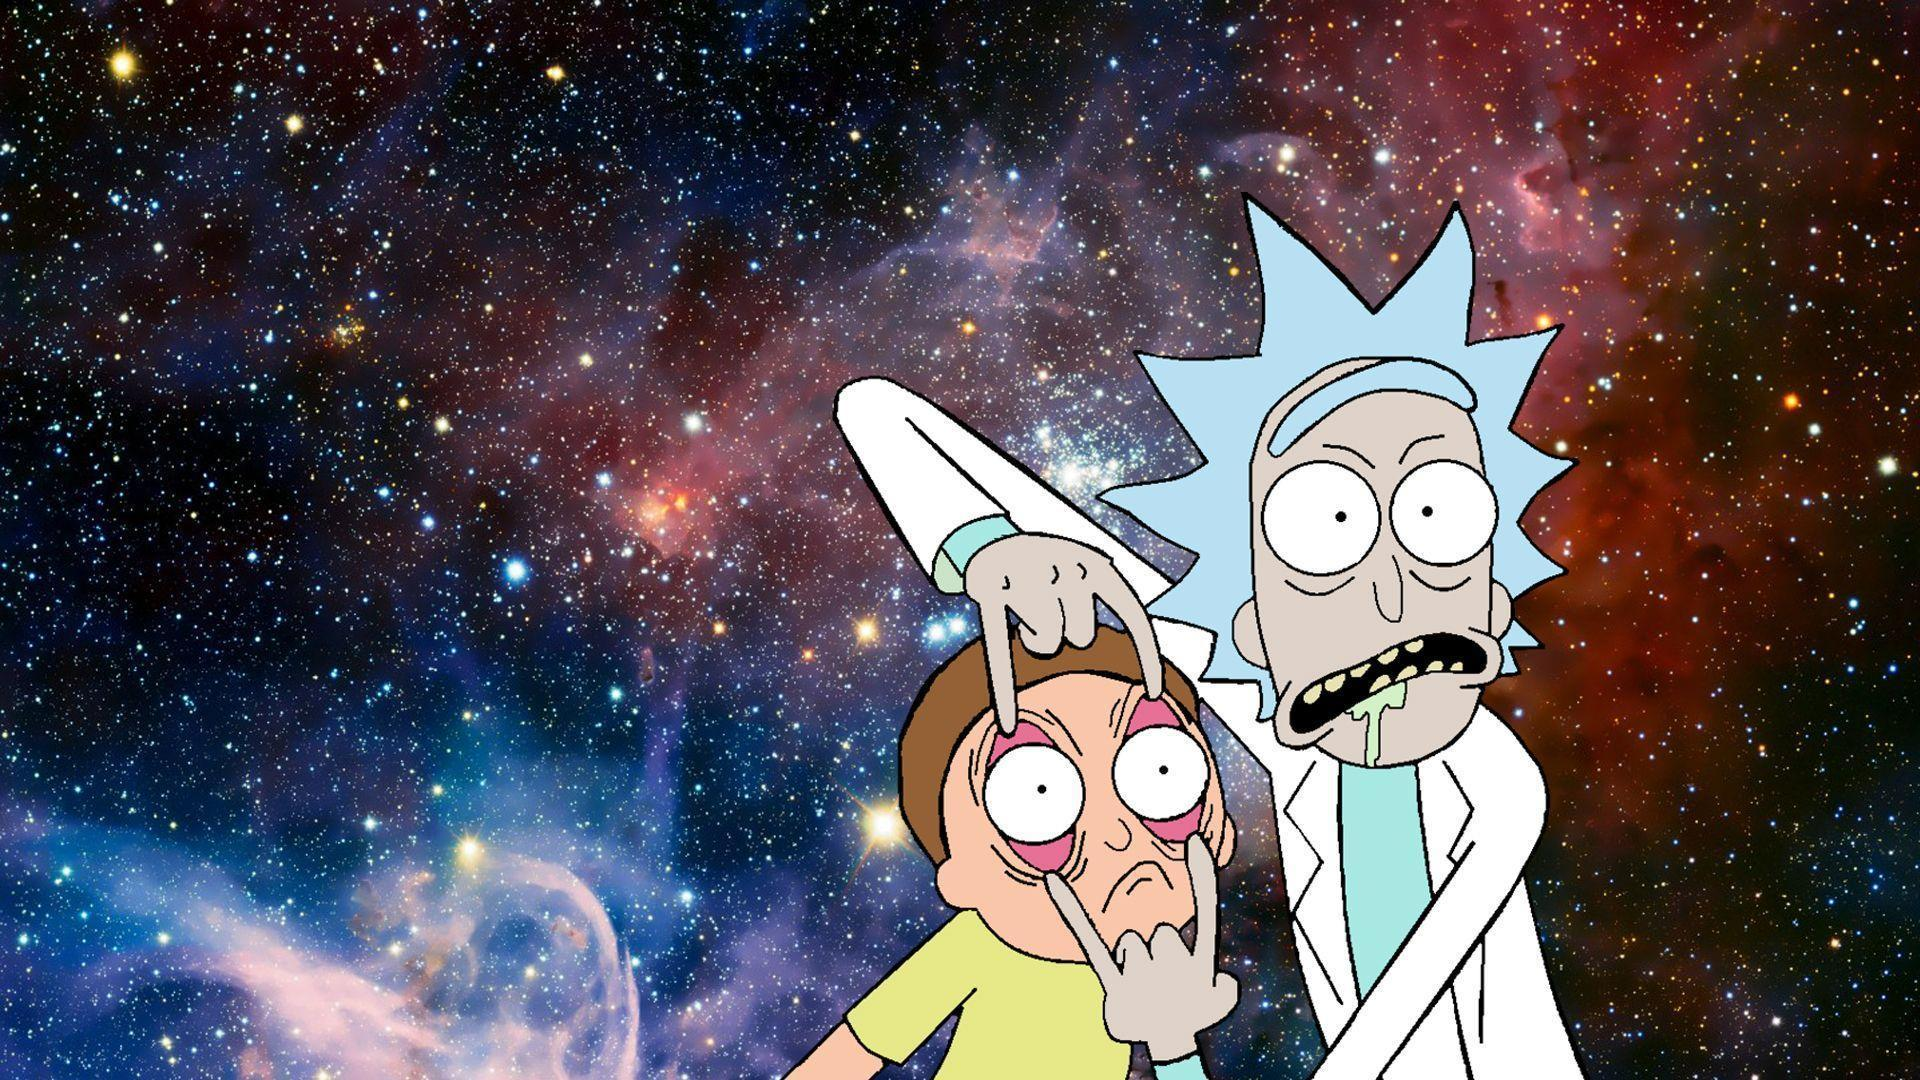 Rick and Morty HD Wallpapers - Top Free